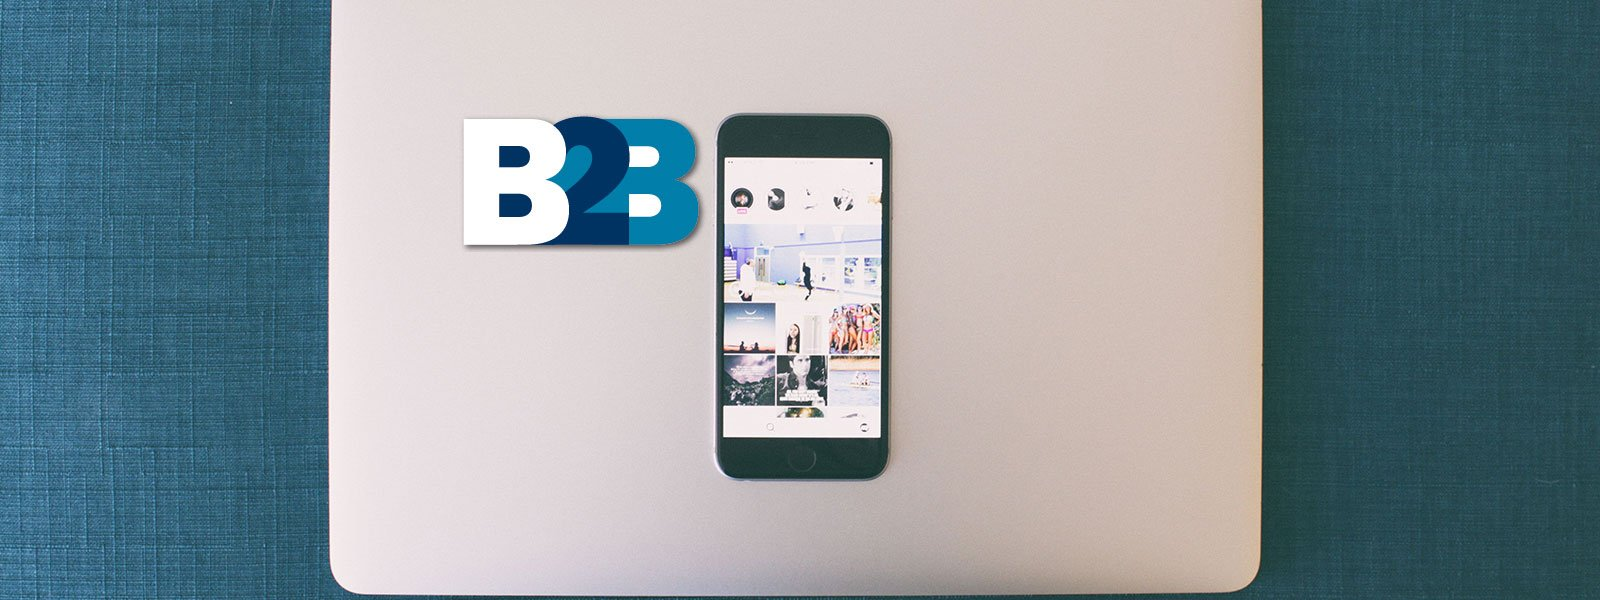 Instagram Stories Can Be Great for B2B Here's How!